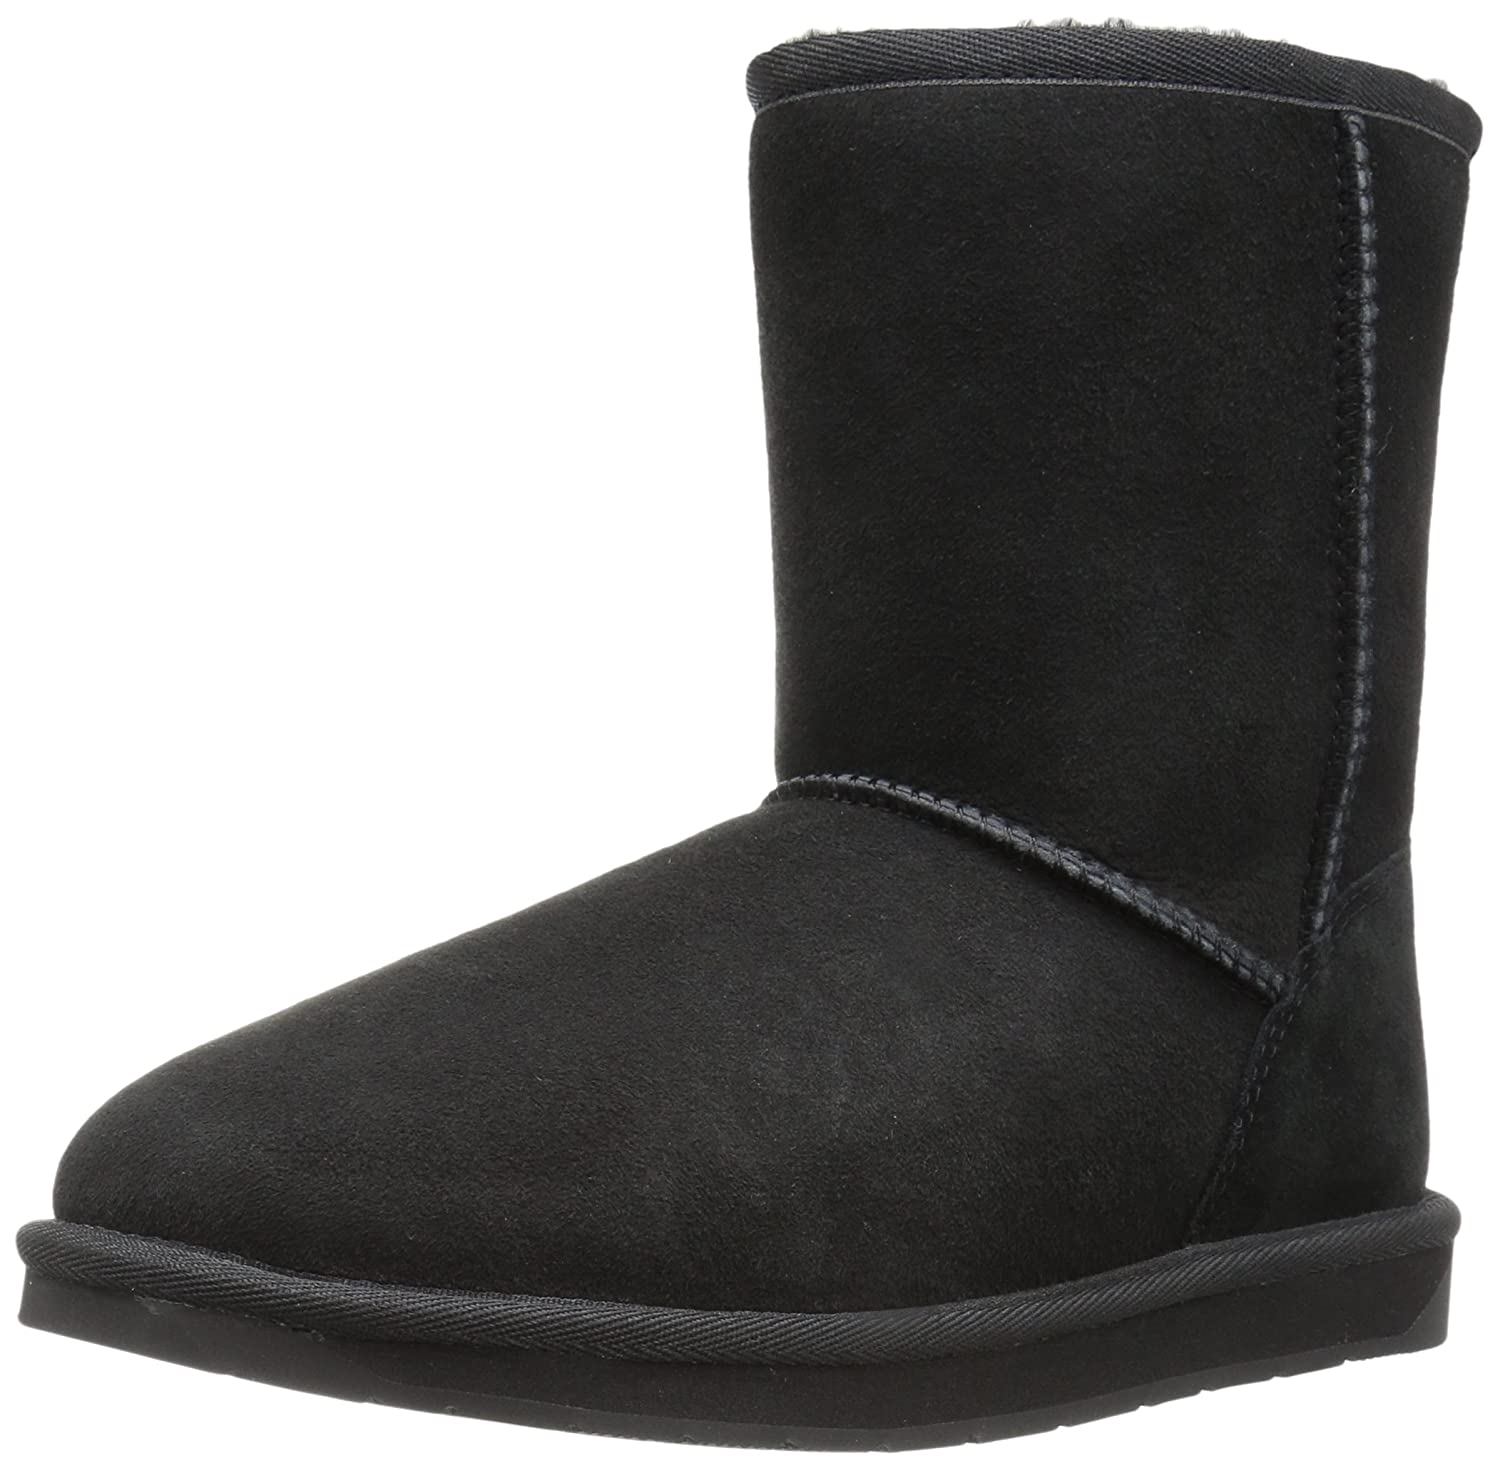 206 Collective Women's Balcom Short Back-Zip Shearling Ankle Boot B0746MHVBV 11 B(M) US|Black Suede